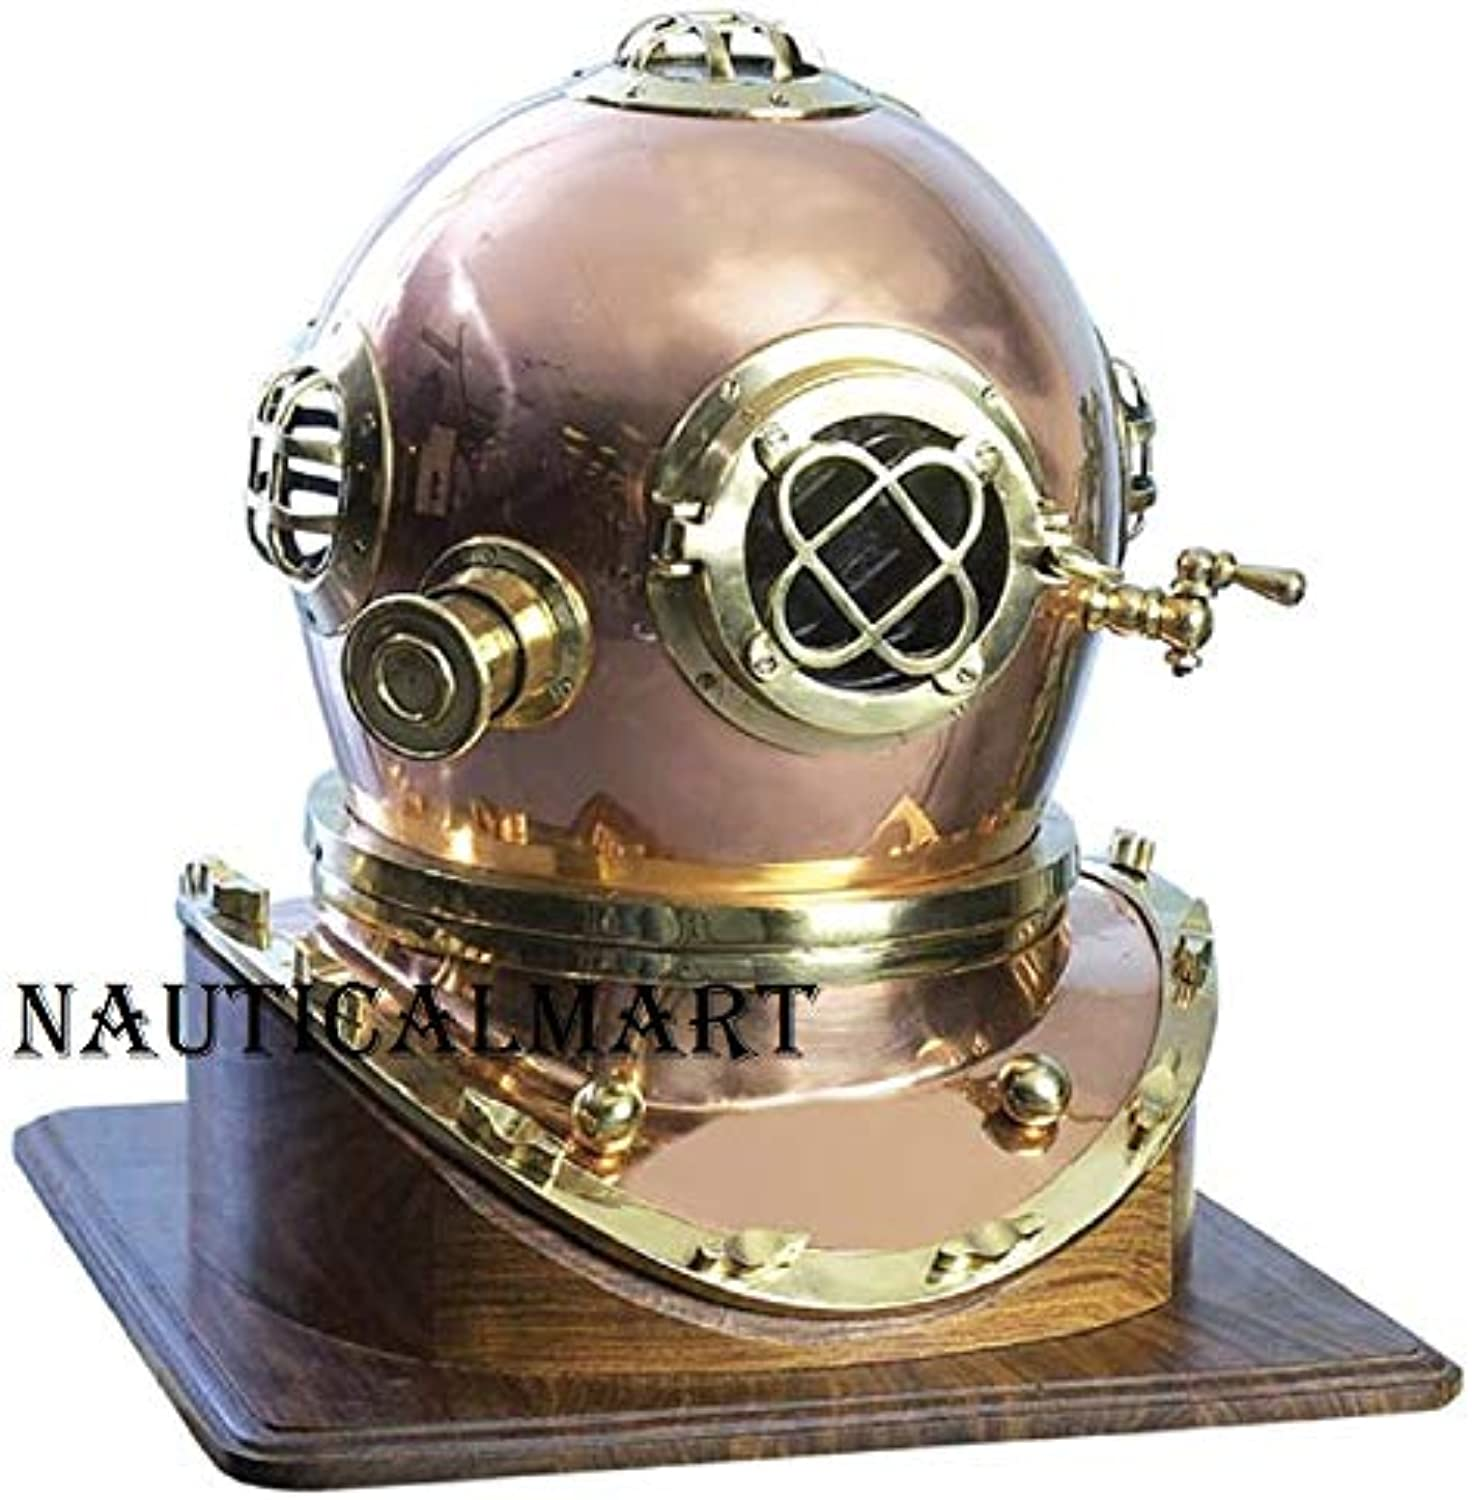 NAUTICALMART Solid Shiny Mark V Divers Helmet Copper Brass 18''